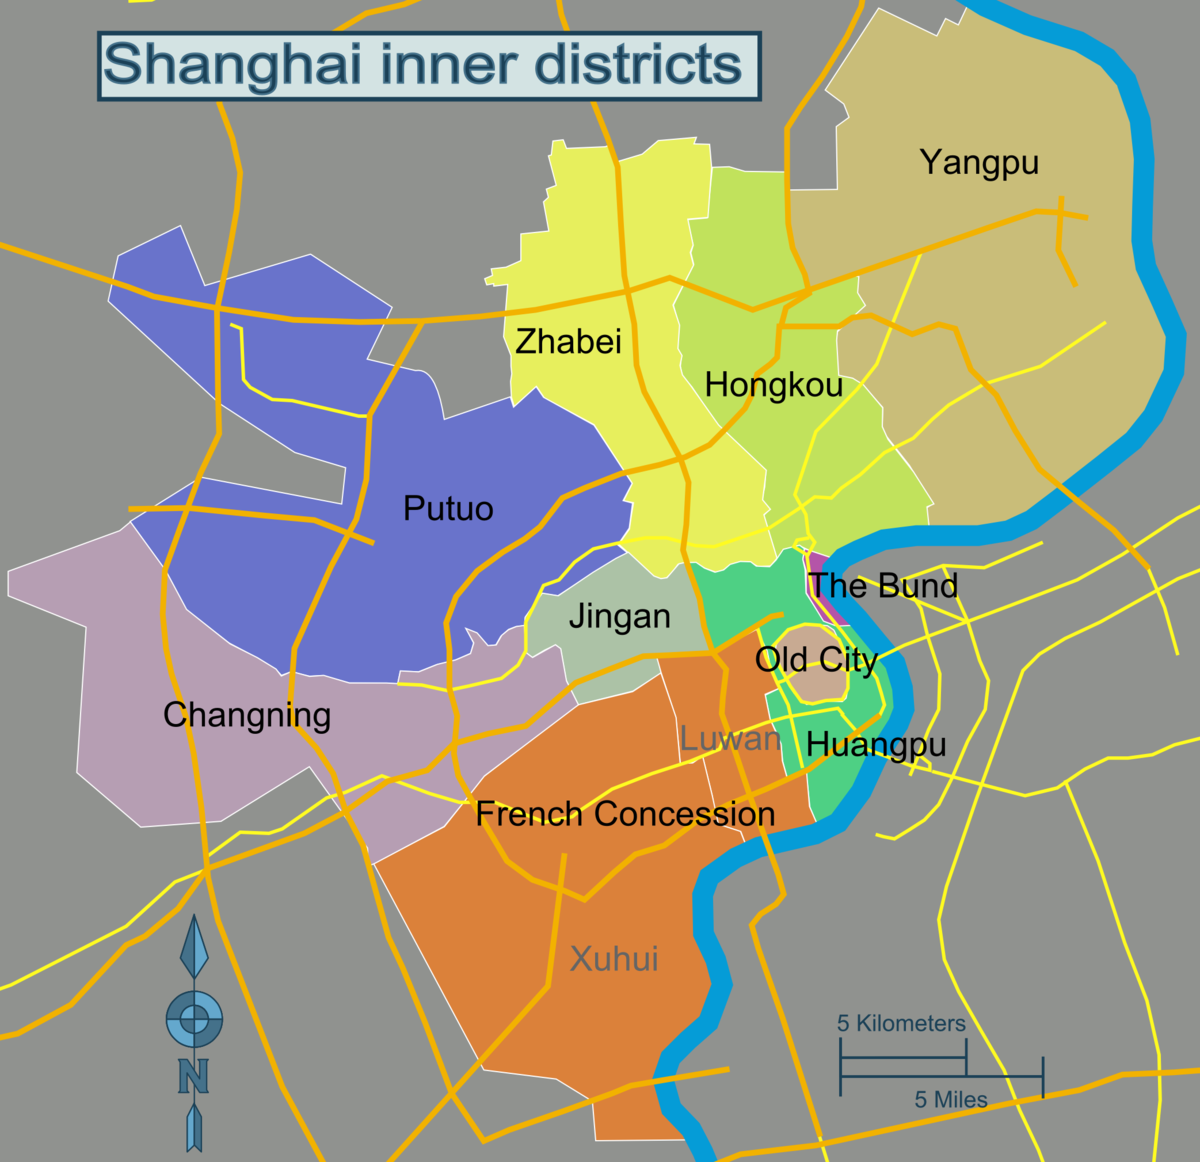 ShanghaiHuangpu Travel guide at Wikivoyage